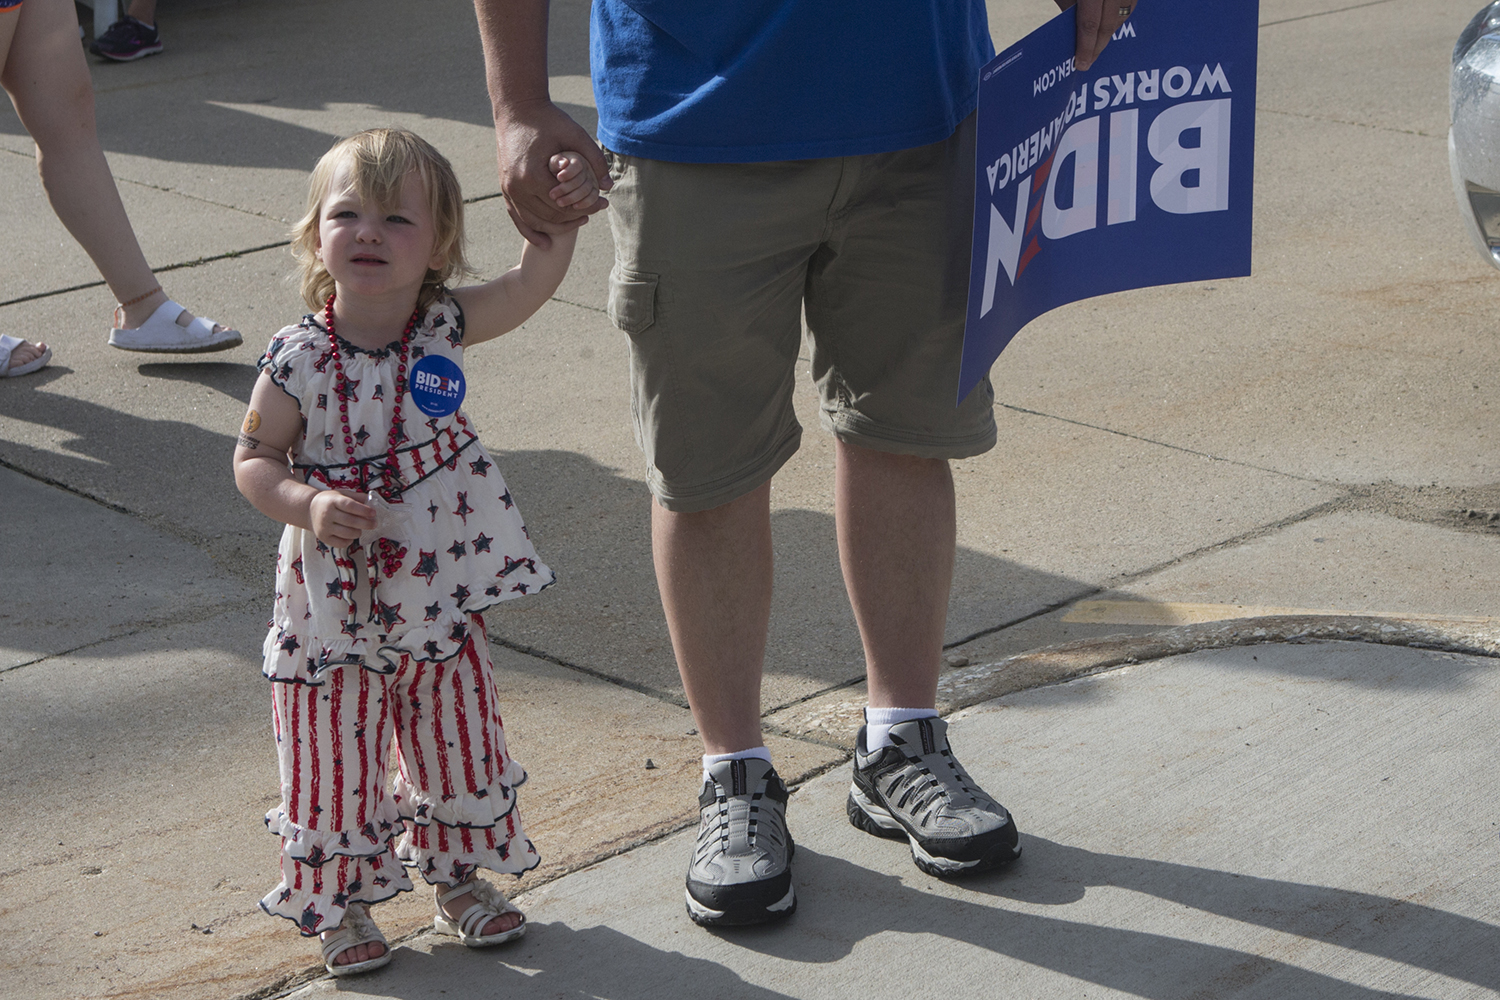 Gillian+Millard+holds+her+father%27s+hand+during+a+4th+of+July+parade+in+Independence+Iowa+on+July+4%2C+2019.+Former+Vice+President+Joe+Biden%2C+former+Congressmen+Beto+O%27Rourke%2C+and+Mayor+of+New+York+City+Bill+de+Blasio+were+in+attendance.+The+Millards+come+from+Trinidad%2C+Colorado+to+visit+with+family+and+watch+the+parade.